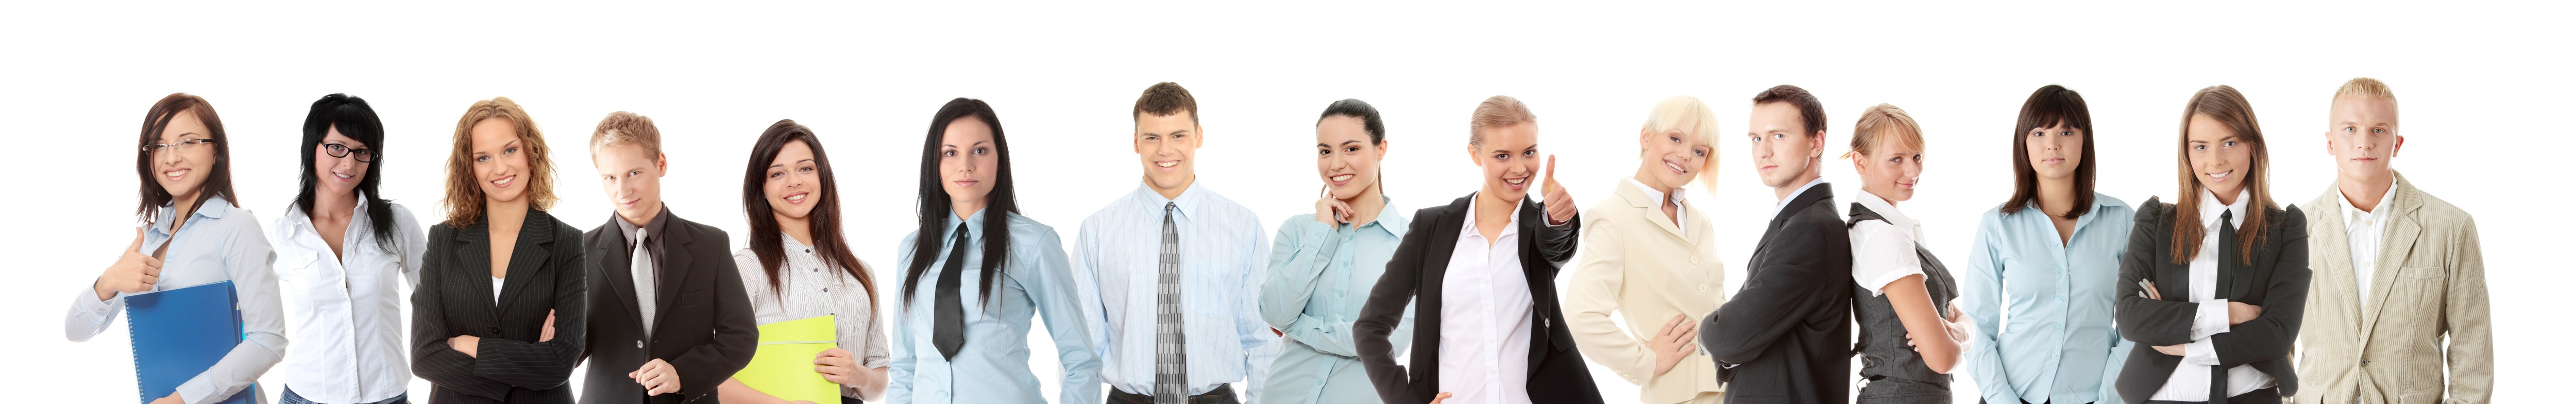 FreeGreatPicture.com-28600-business-people.jpg